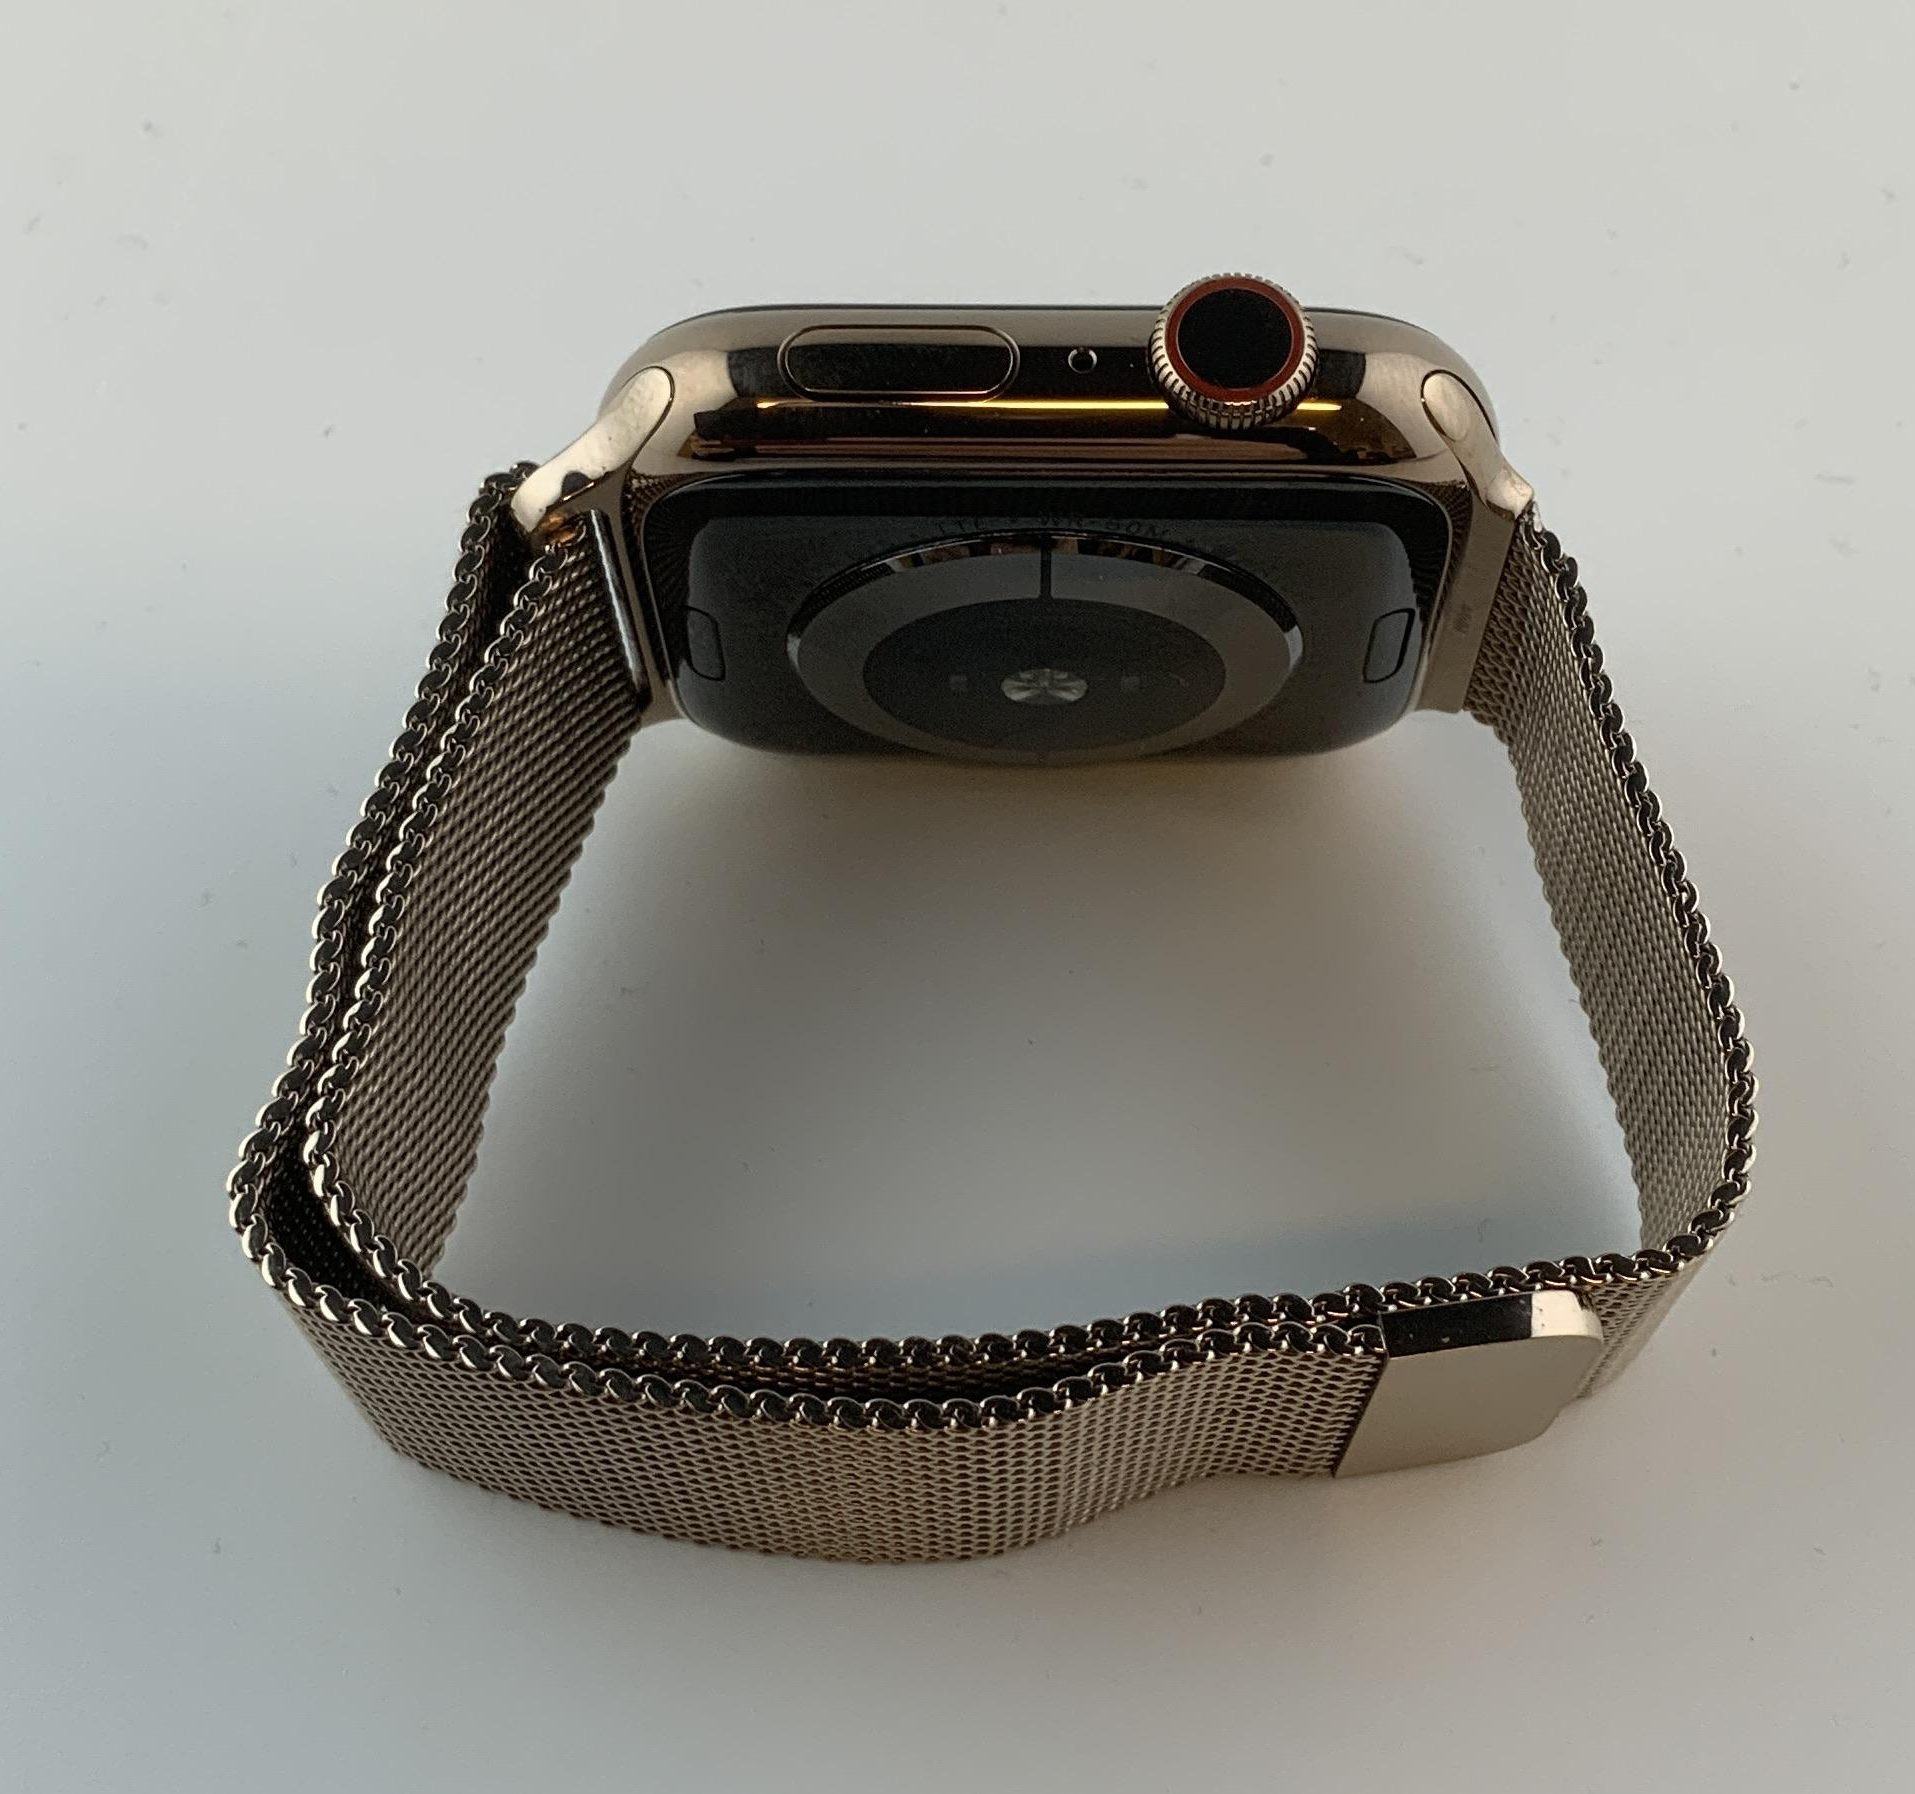 Watch Series 5 Steel Cellular (44mm), Gold, image 2